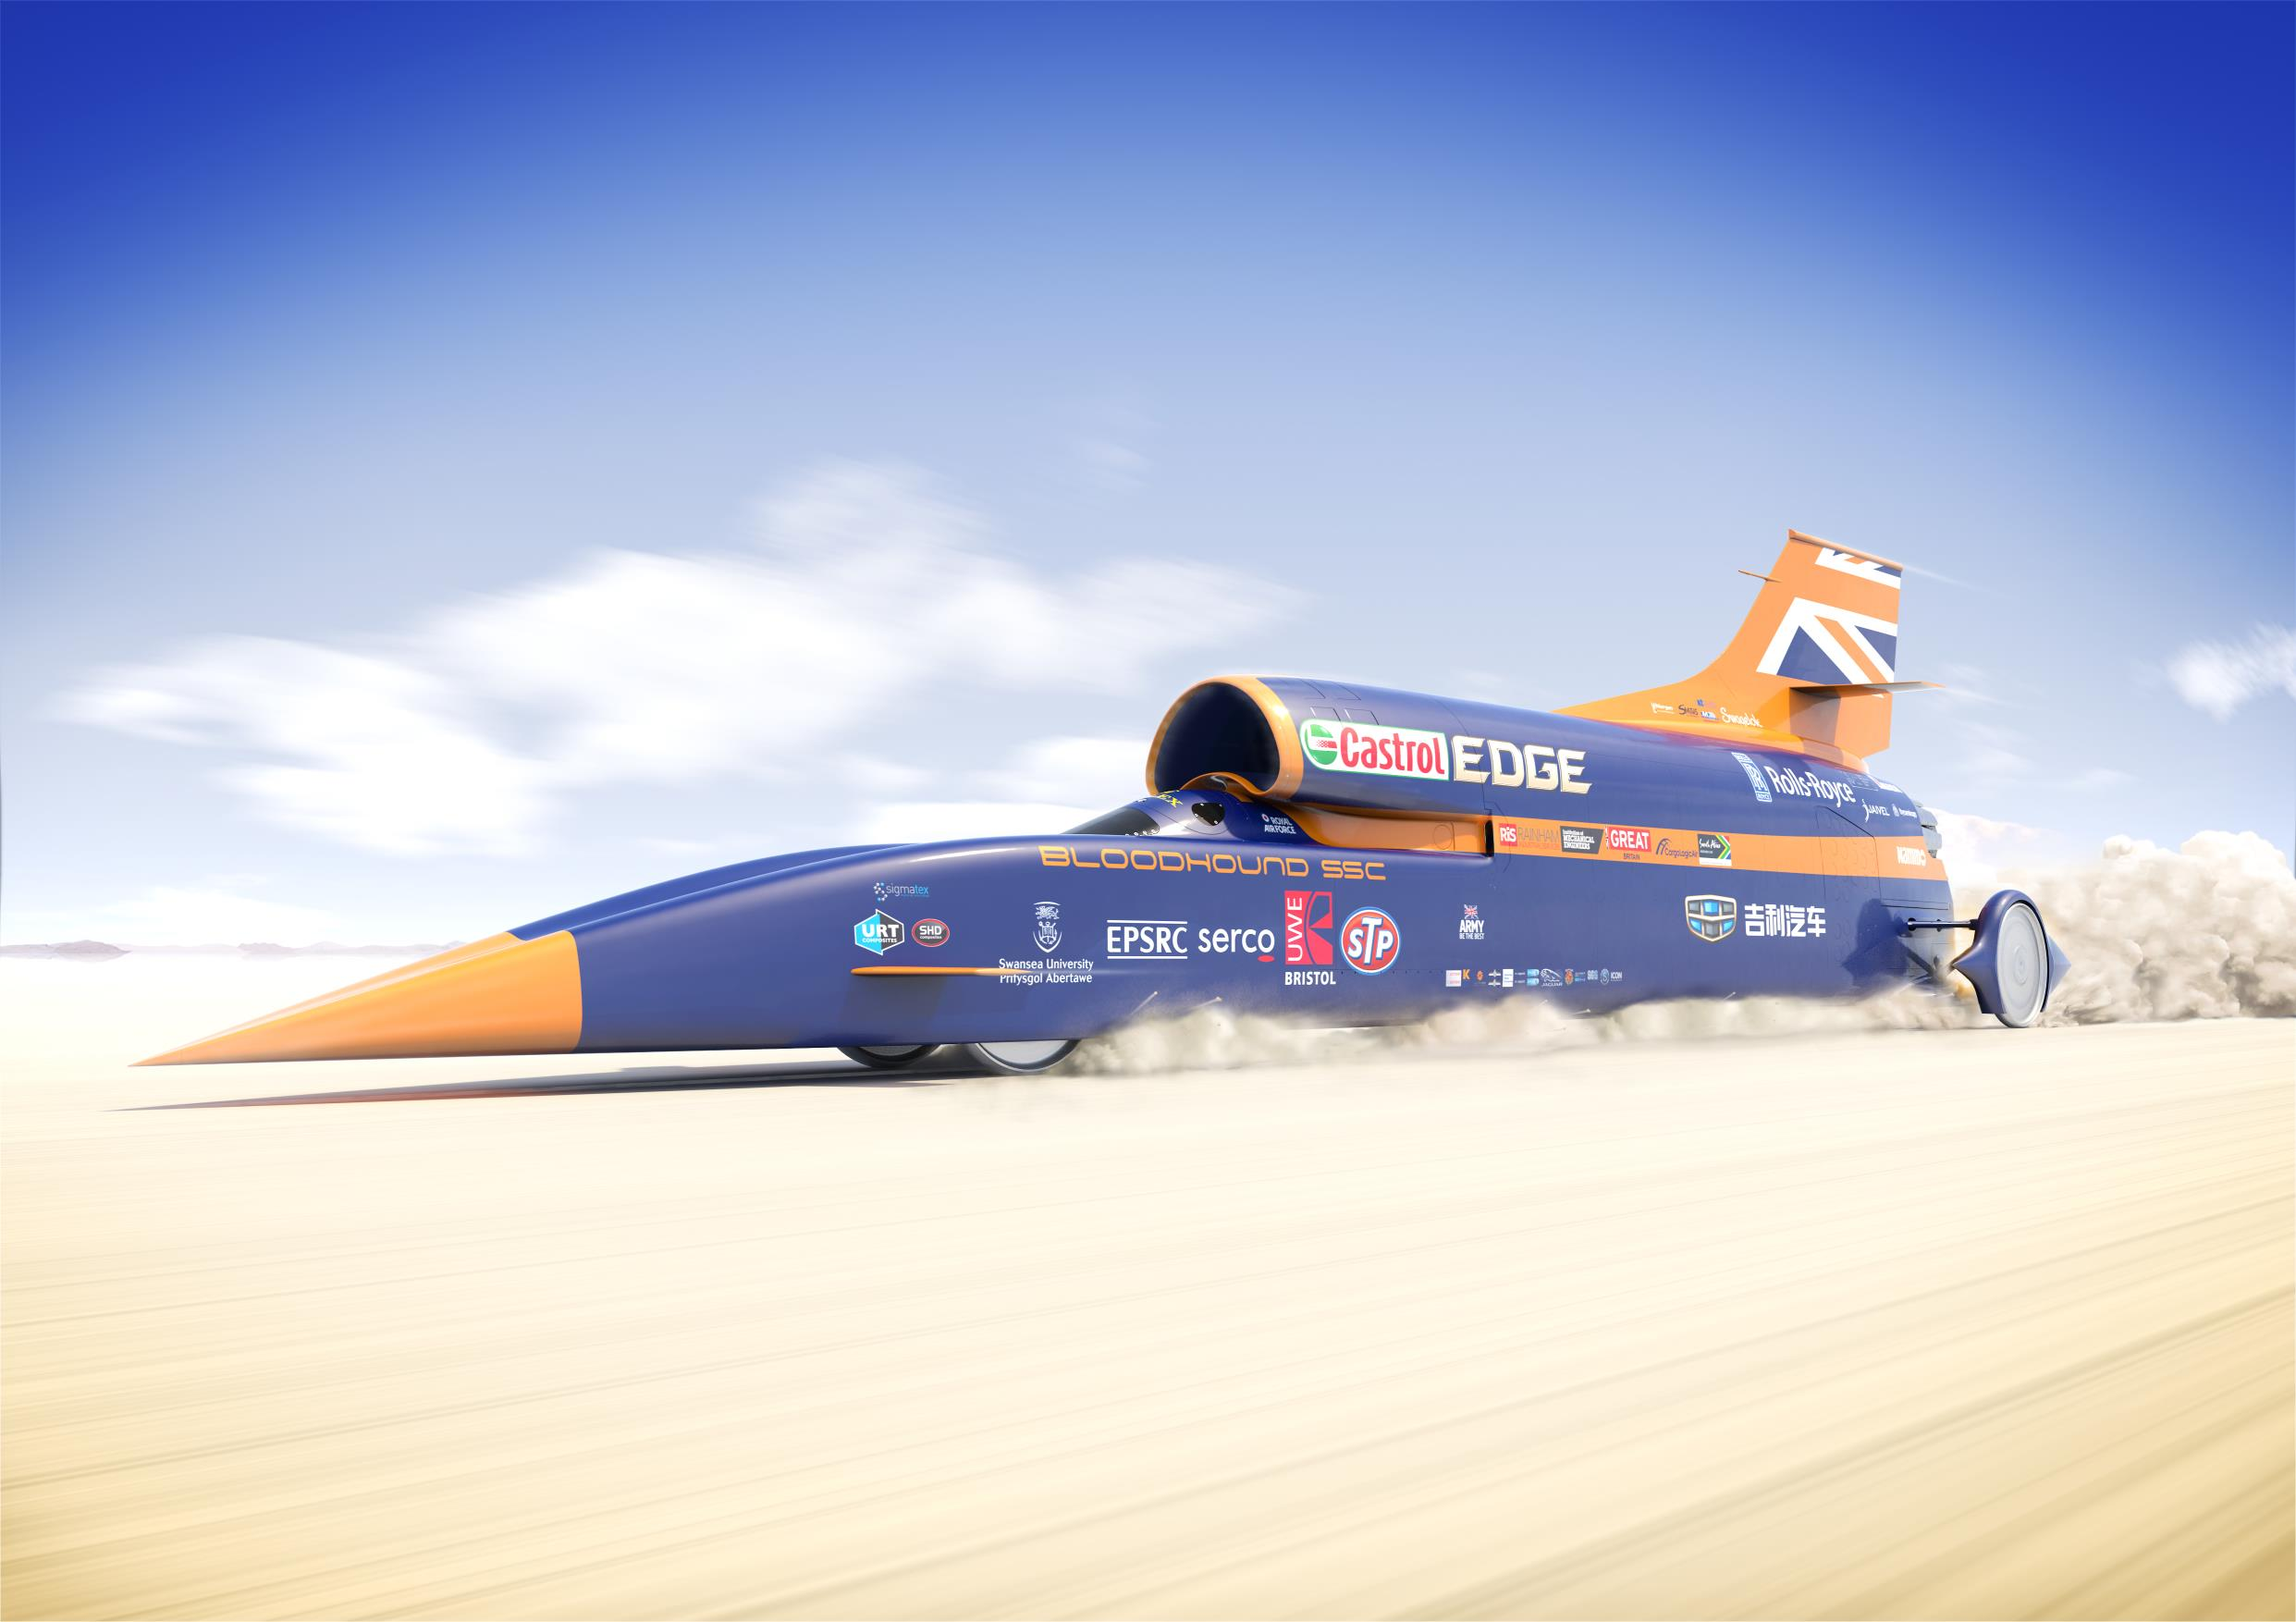 Bloodhound SSC is aiming to break the world land speed record